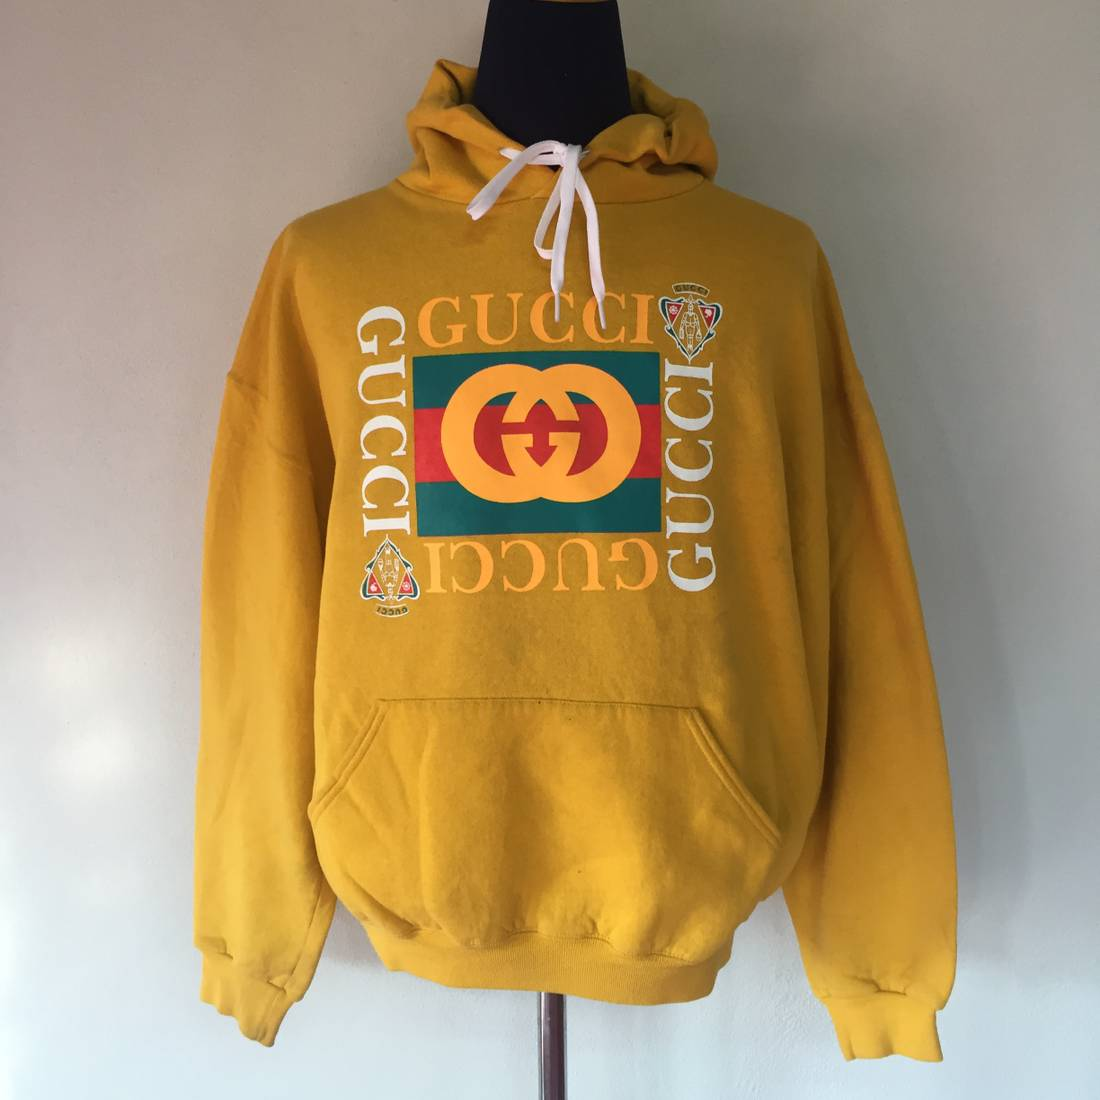 gucci hoodie. gucci vintage hoodie 90s very rare size us l / eu 52-54